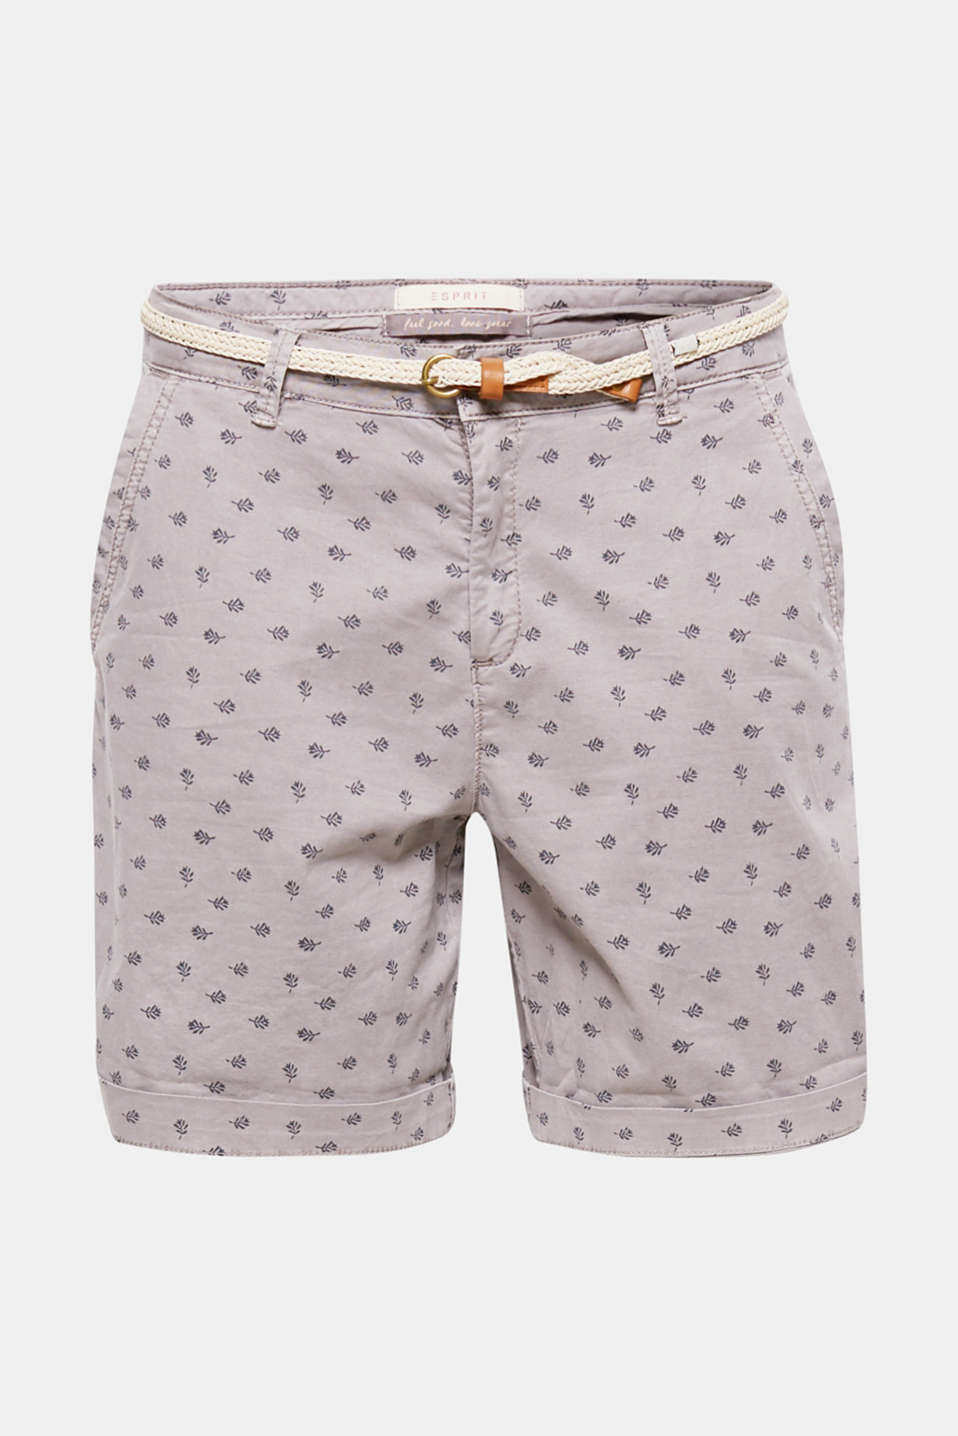 The minimalist print of fine branches and the braided belt give these shorts a summery flair.